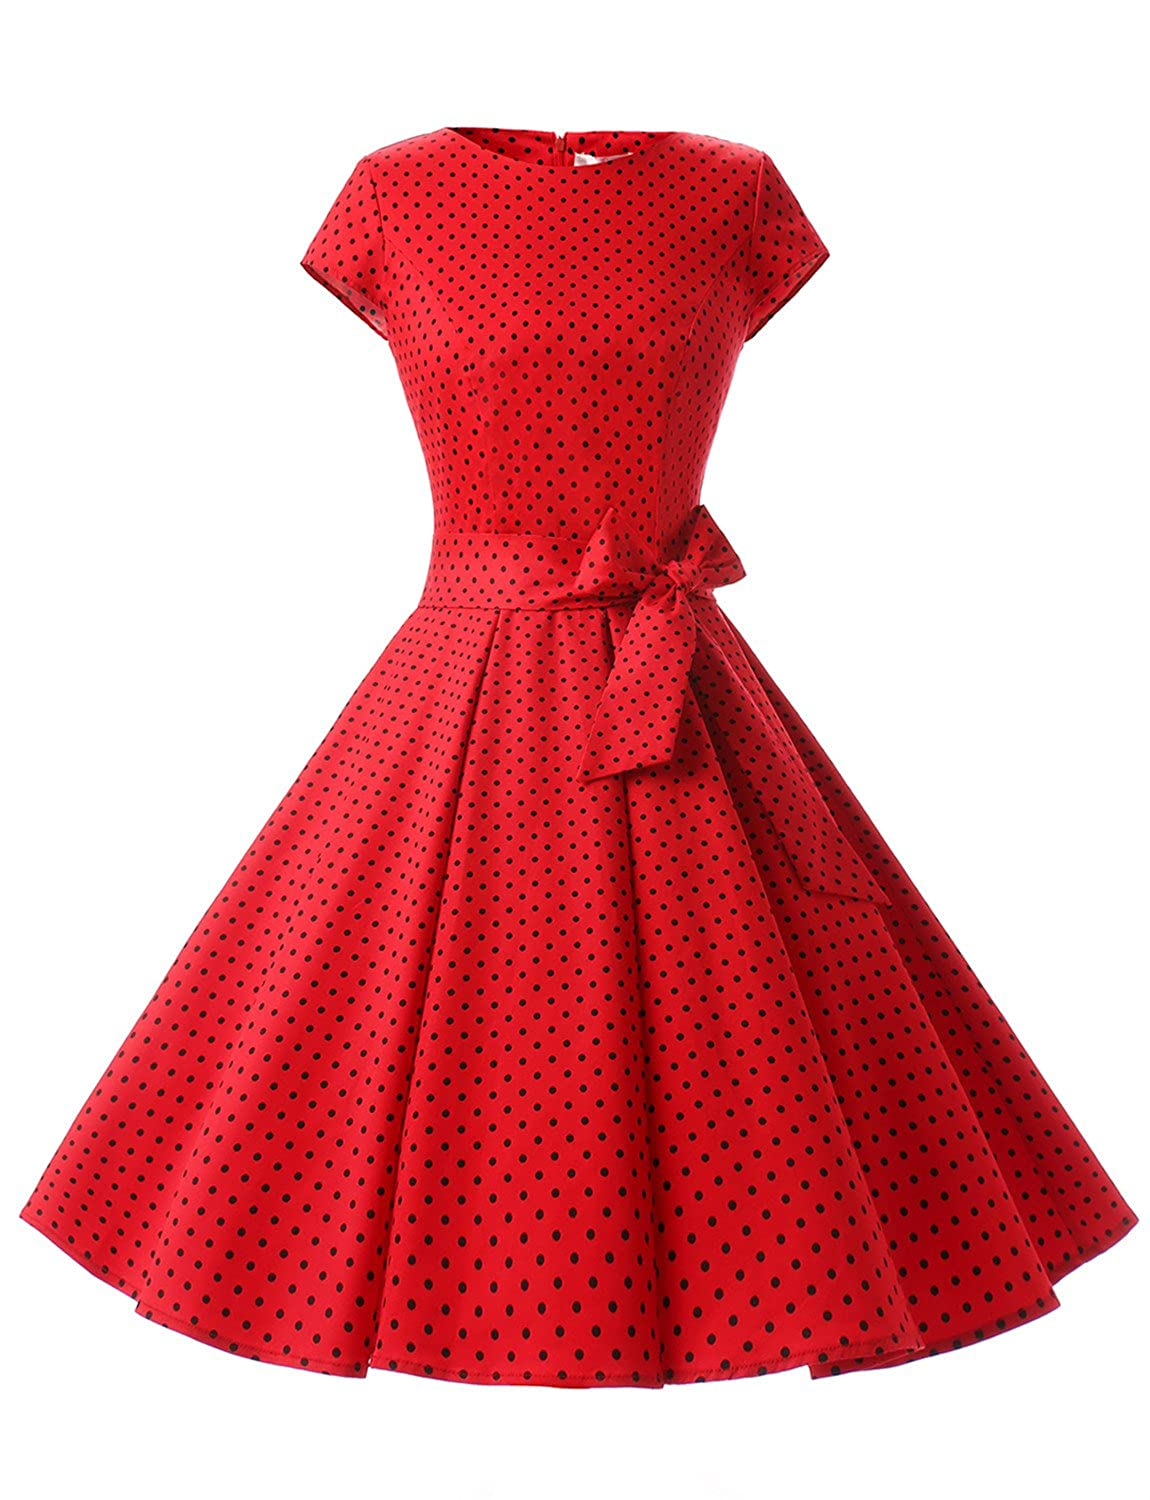 1940s Pinup Dresses for Sale Dressystar Women Vintage 1950s Retro Rockabilly Prom Dresses Cap-sleeve $27.69 AT vintagedancer.com